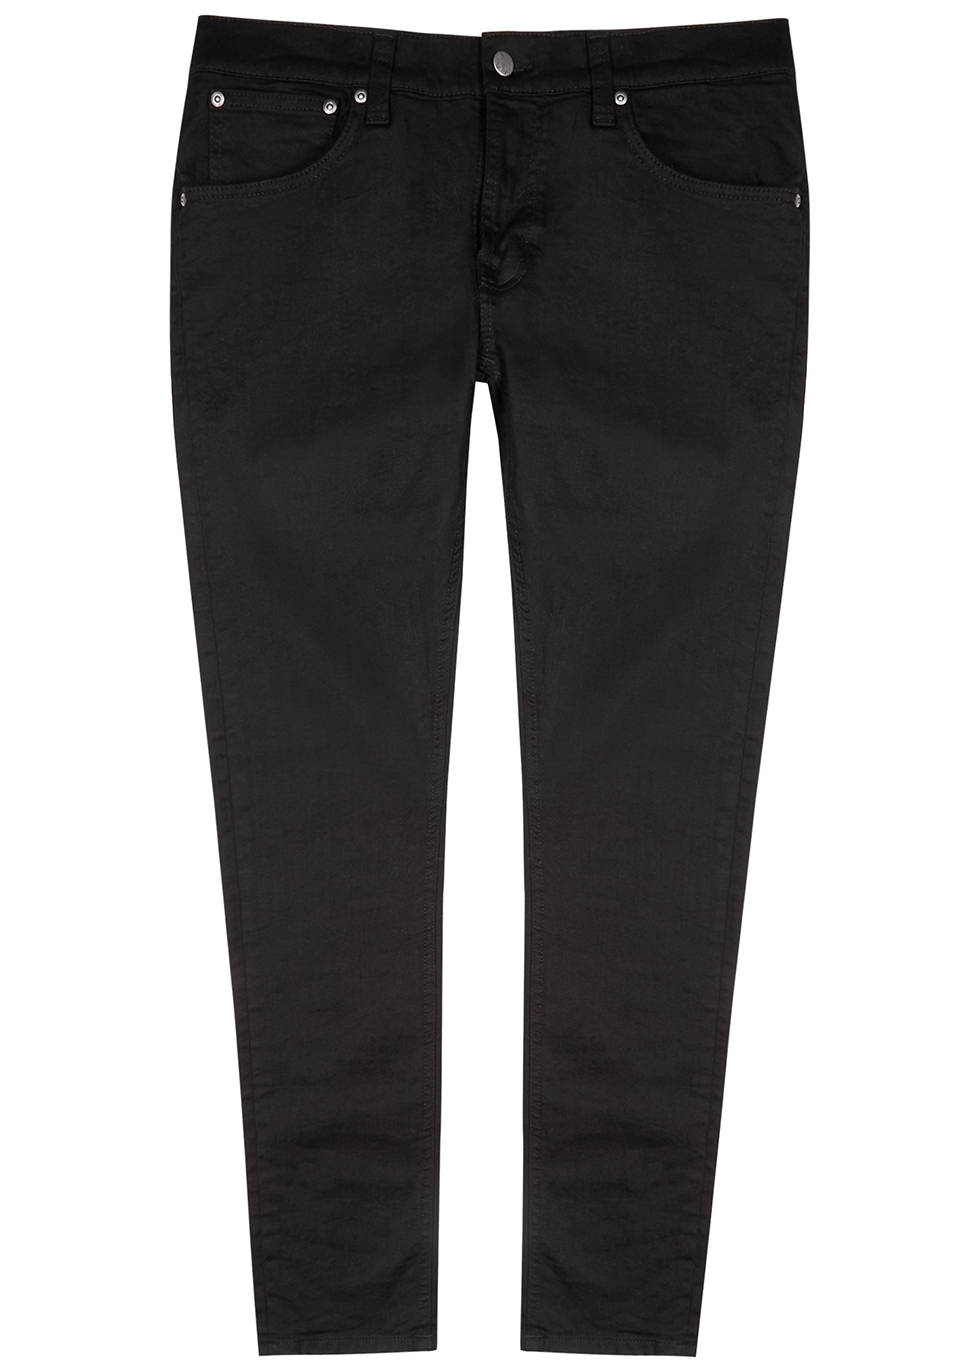 Tight Terry black skinny jeans